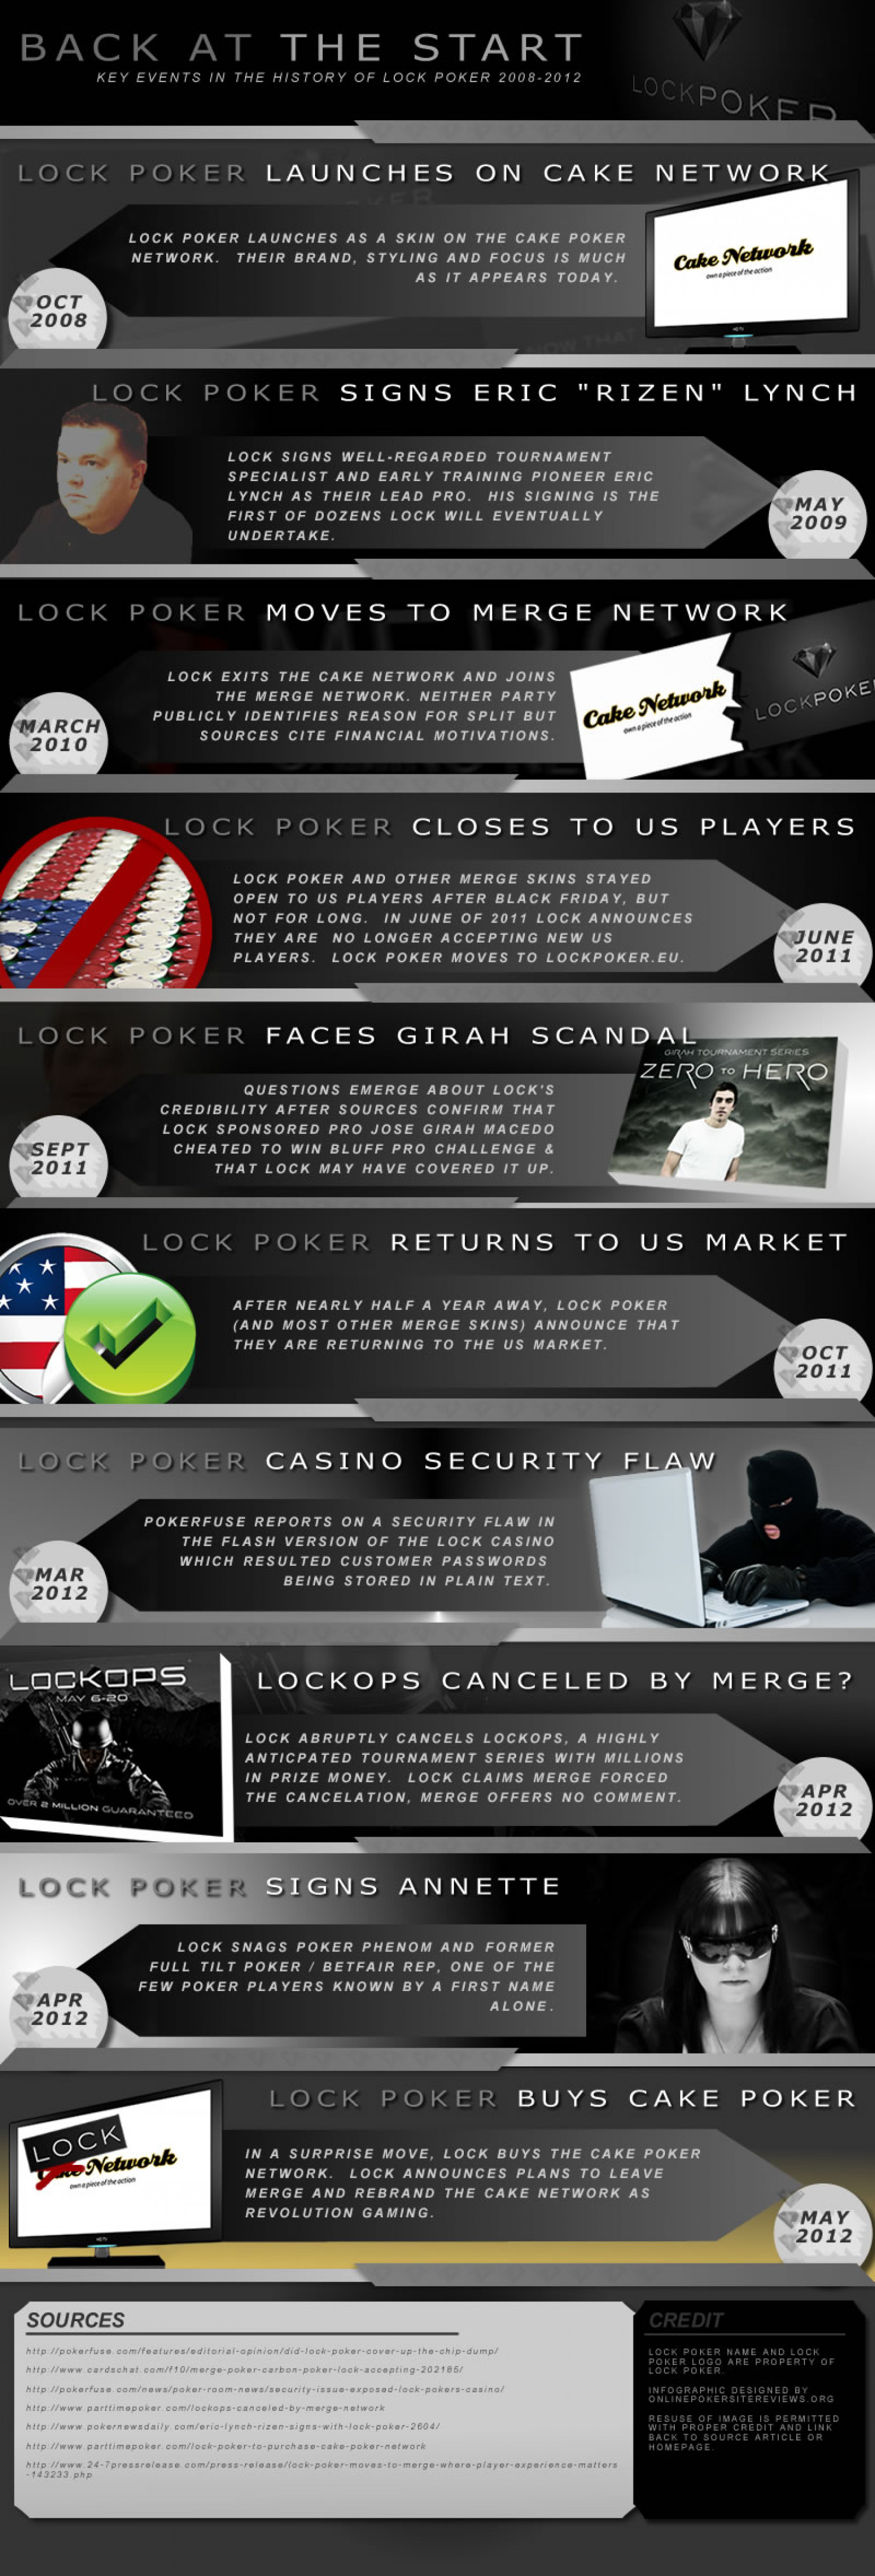 A Brief History of Lock Poker Infographic